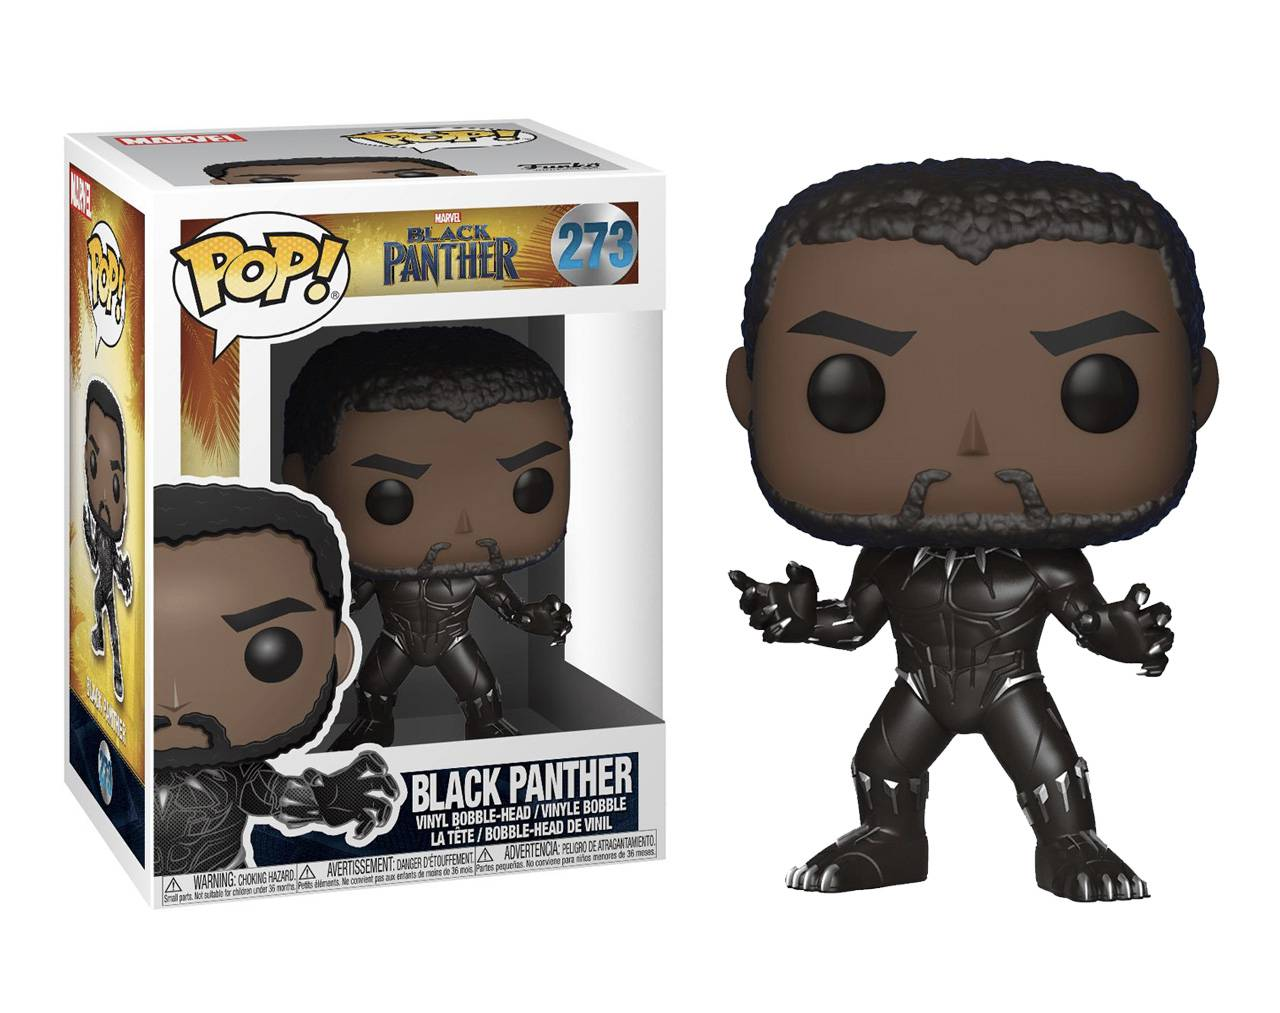 Black Panther Pop! Vinyl